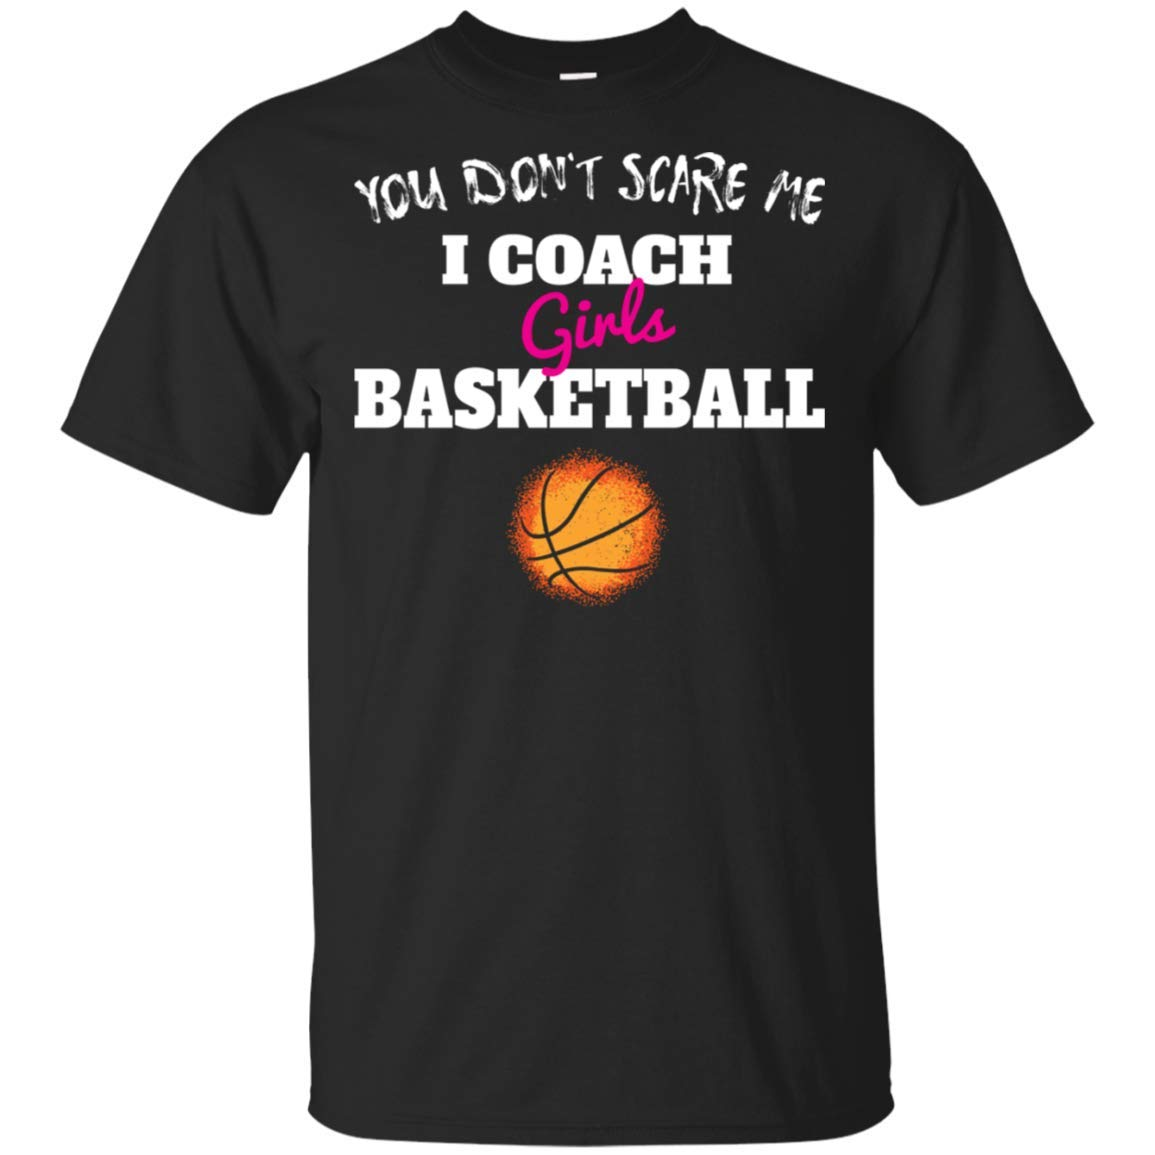 You Dont Scare Me I Coach Girls Basketball T Shirt 8065